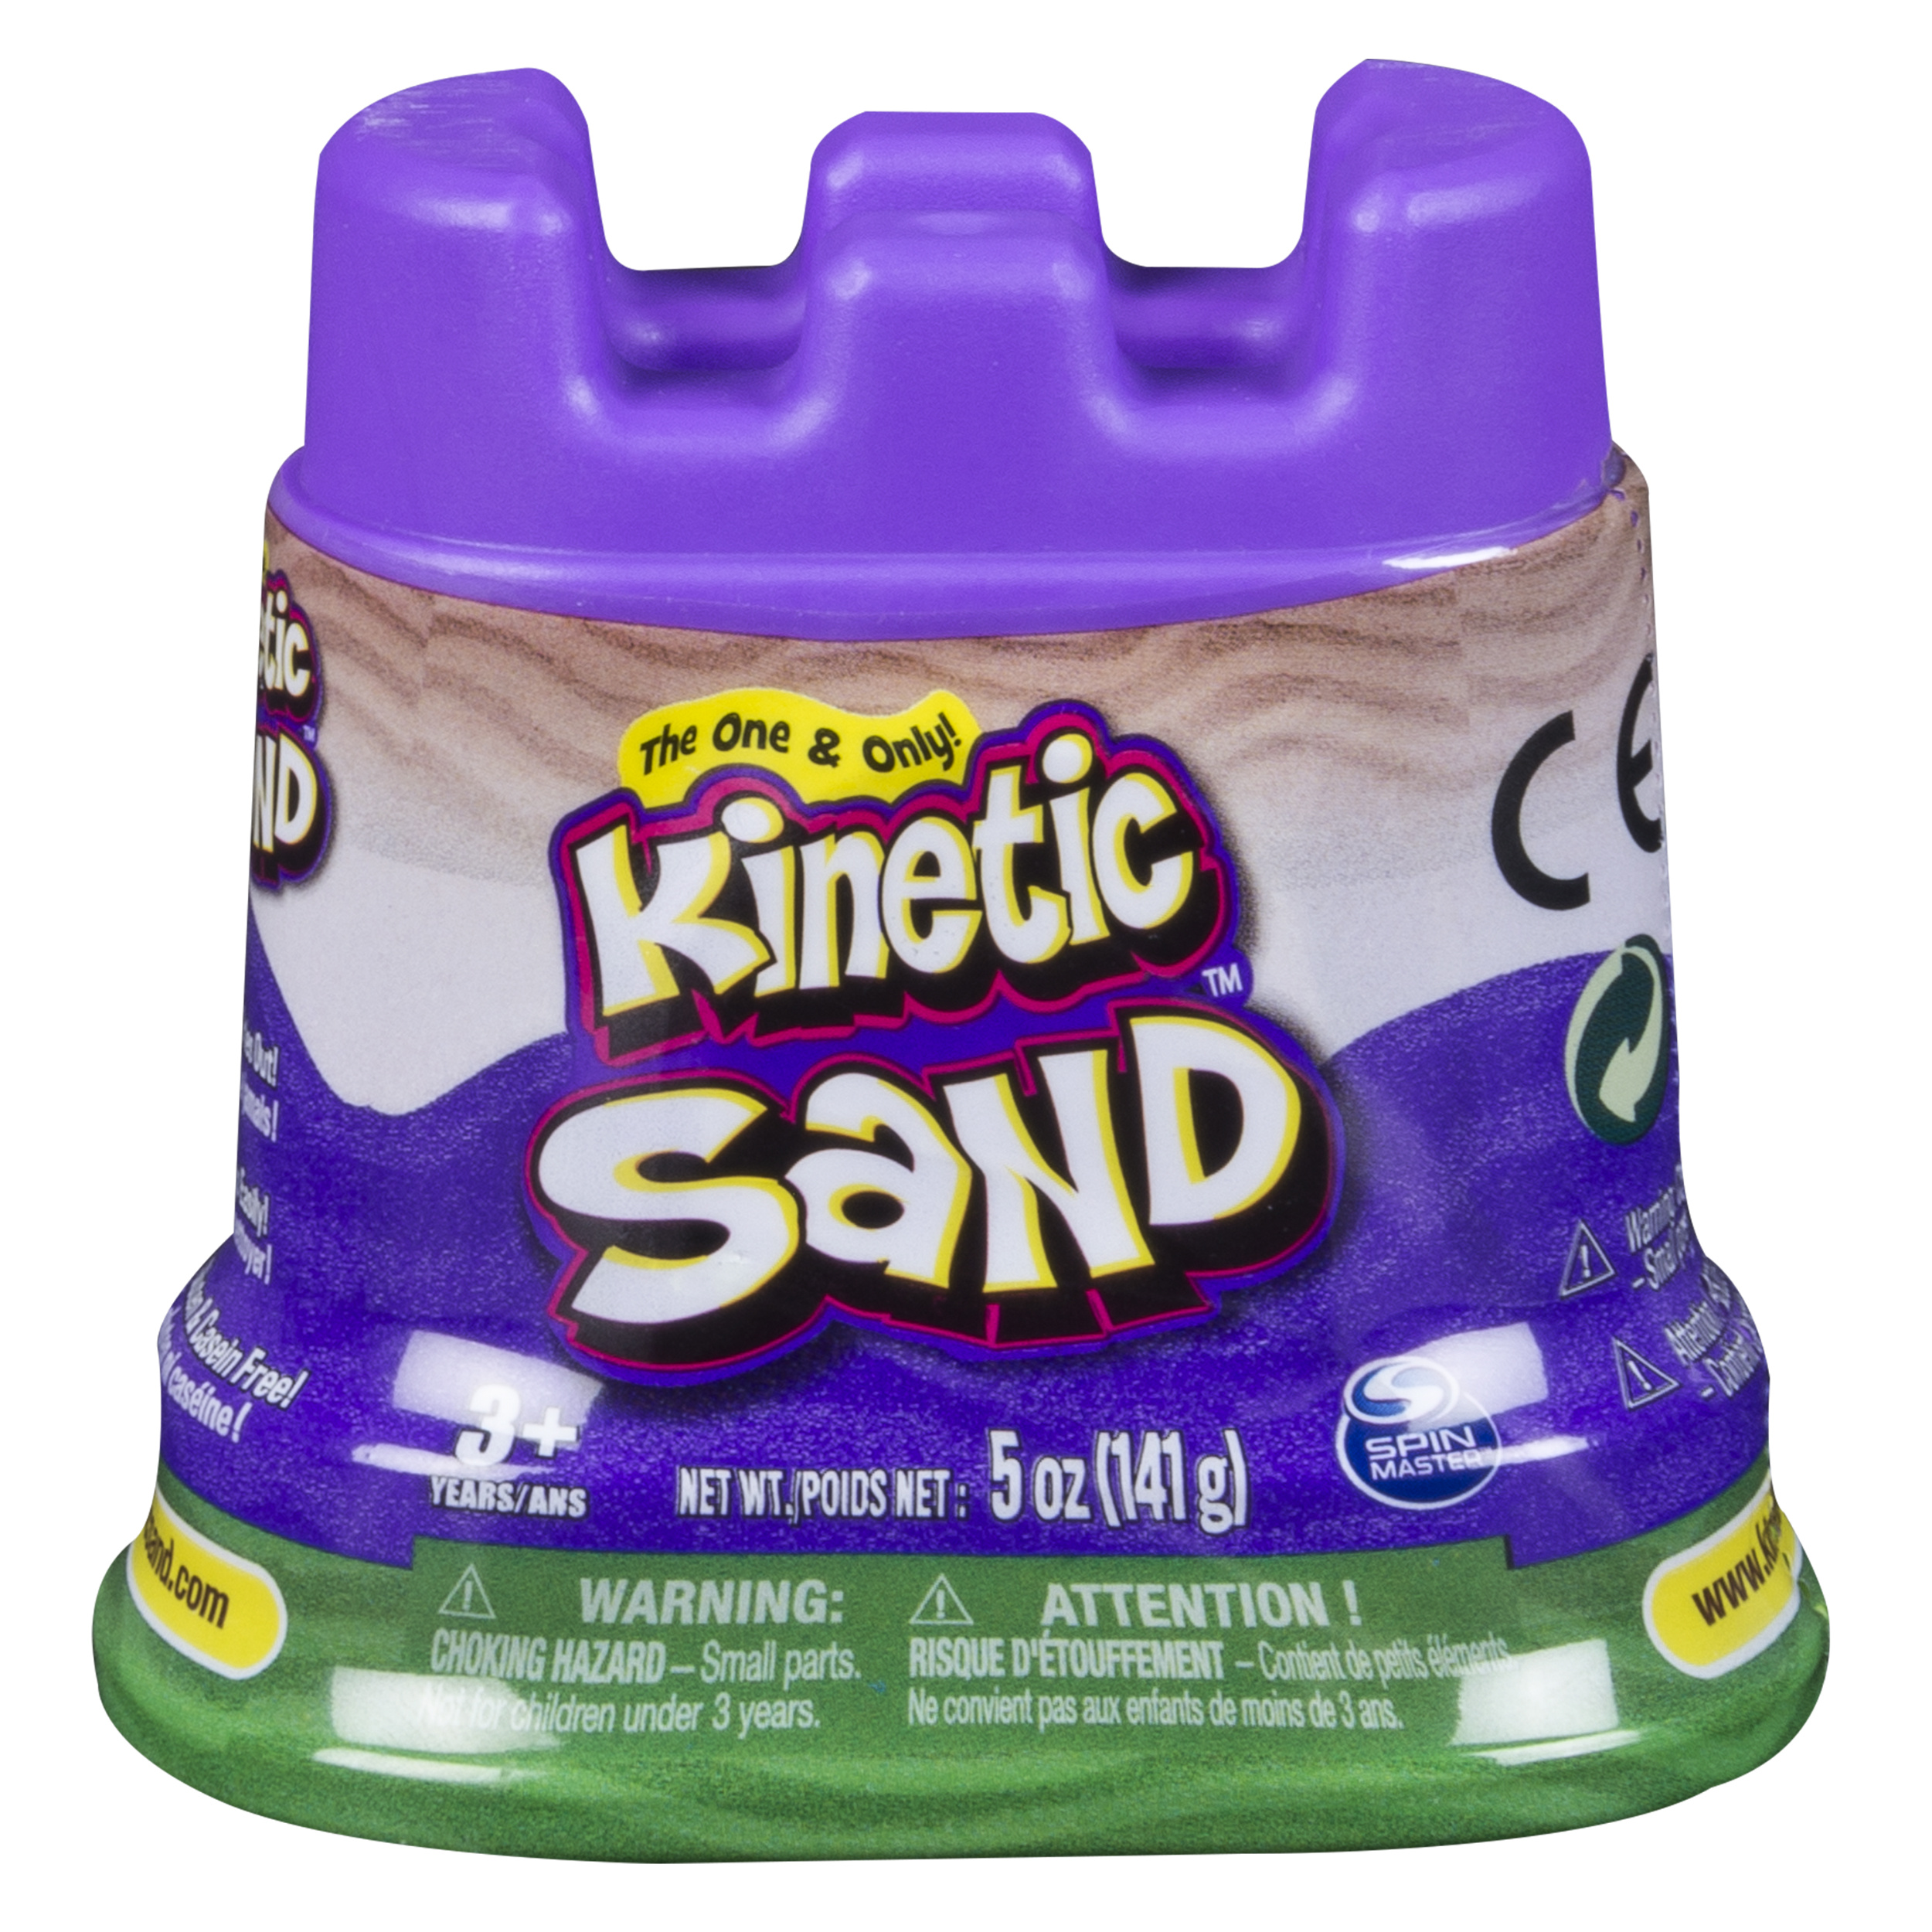 The One & Only Kinetic Sand 5 oz Single Container, Green